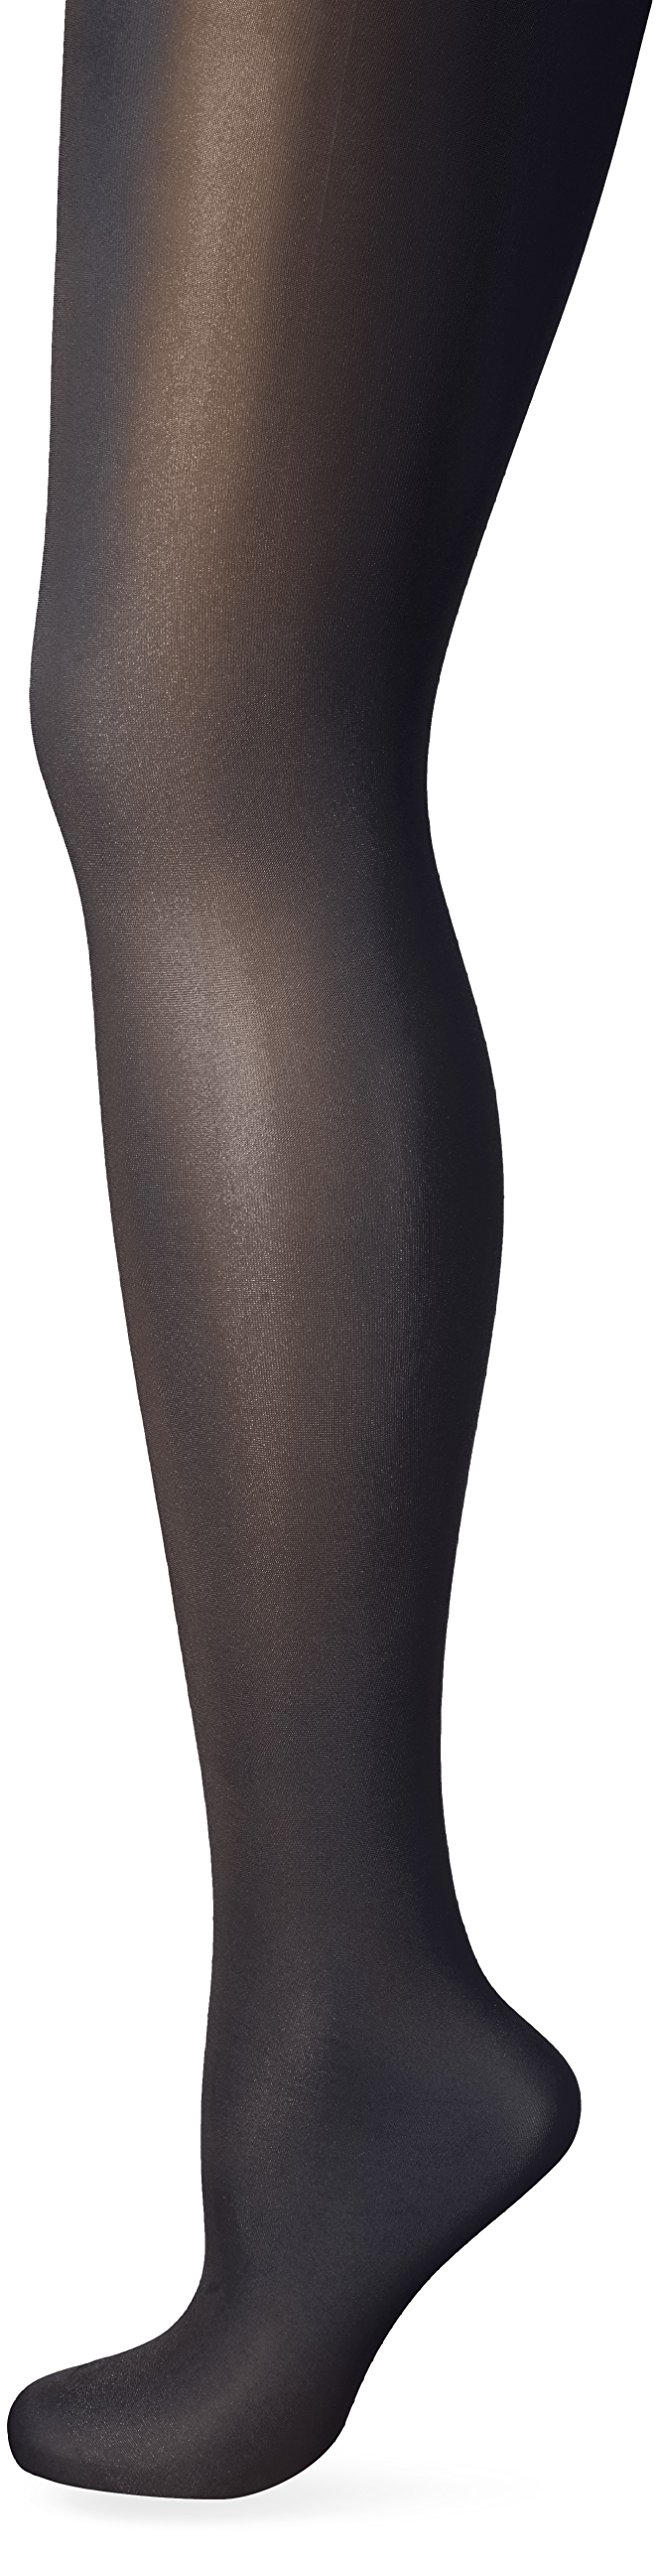 Wolford Satin Touch 20 Tights-Medium-Admiral